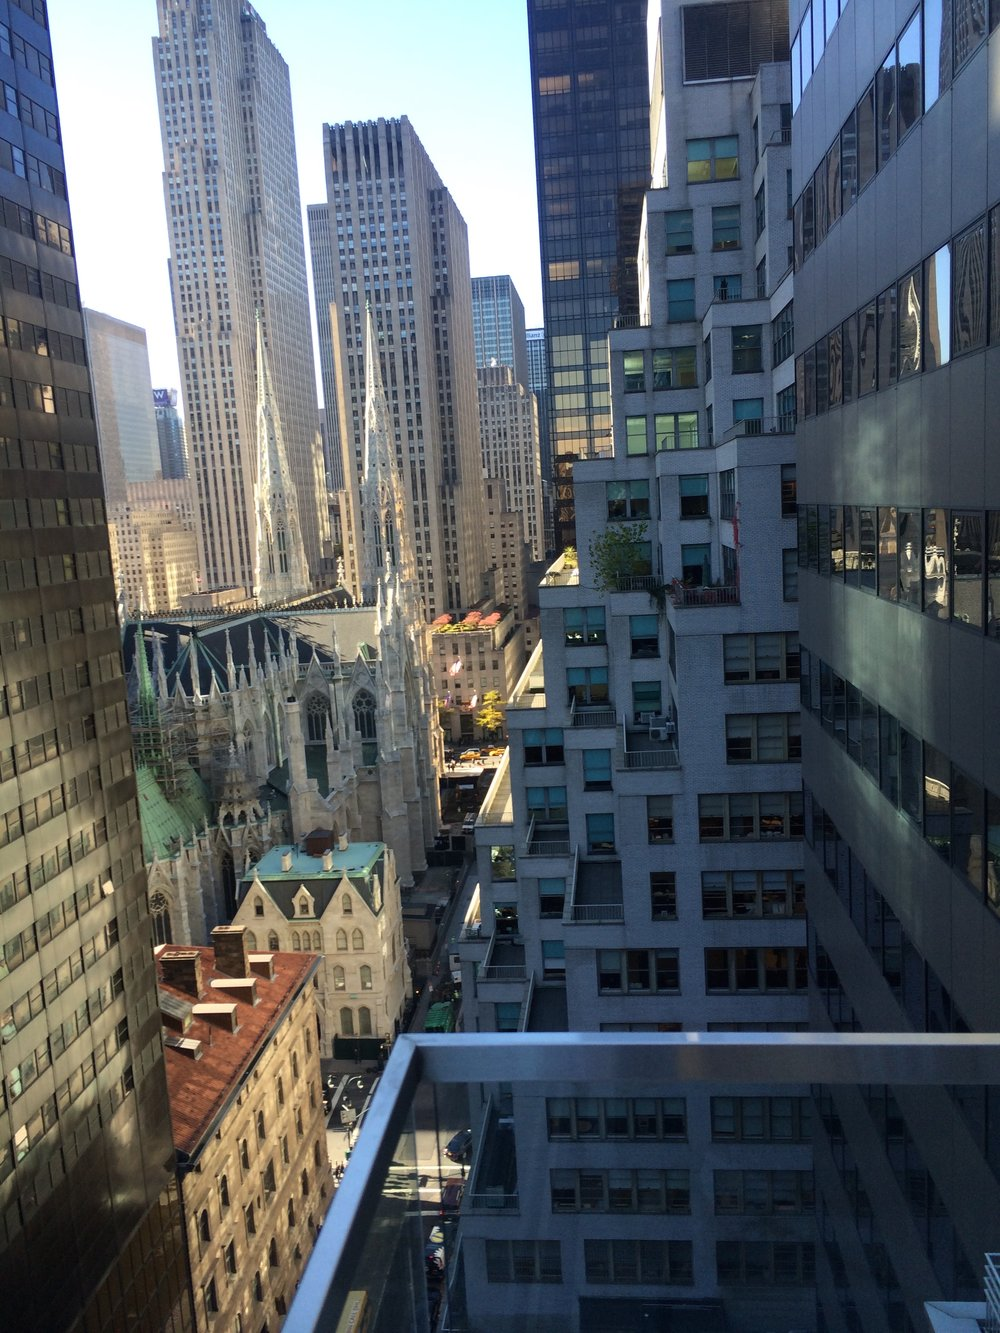 Views extend to St Patrick's Cathedral and roof gardens at the Rockefeller Center.